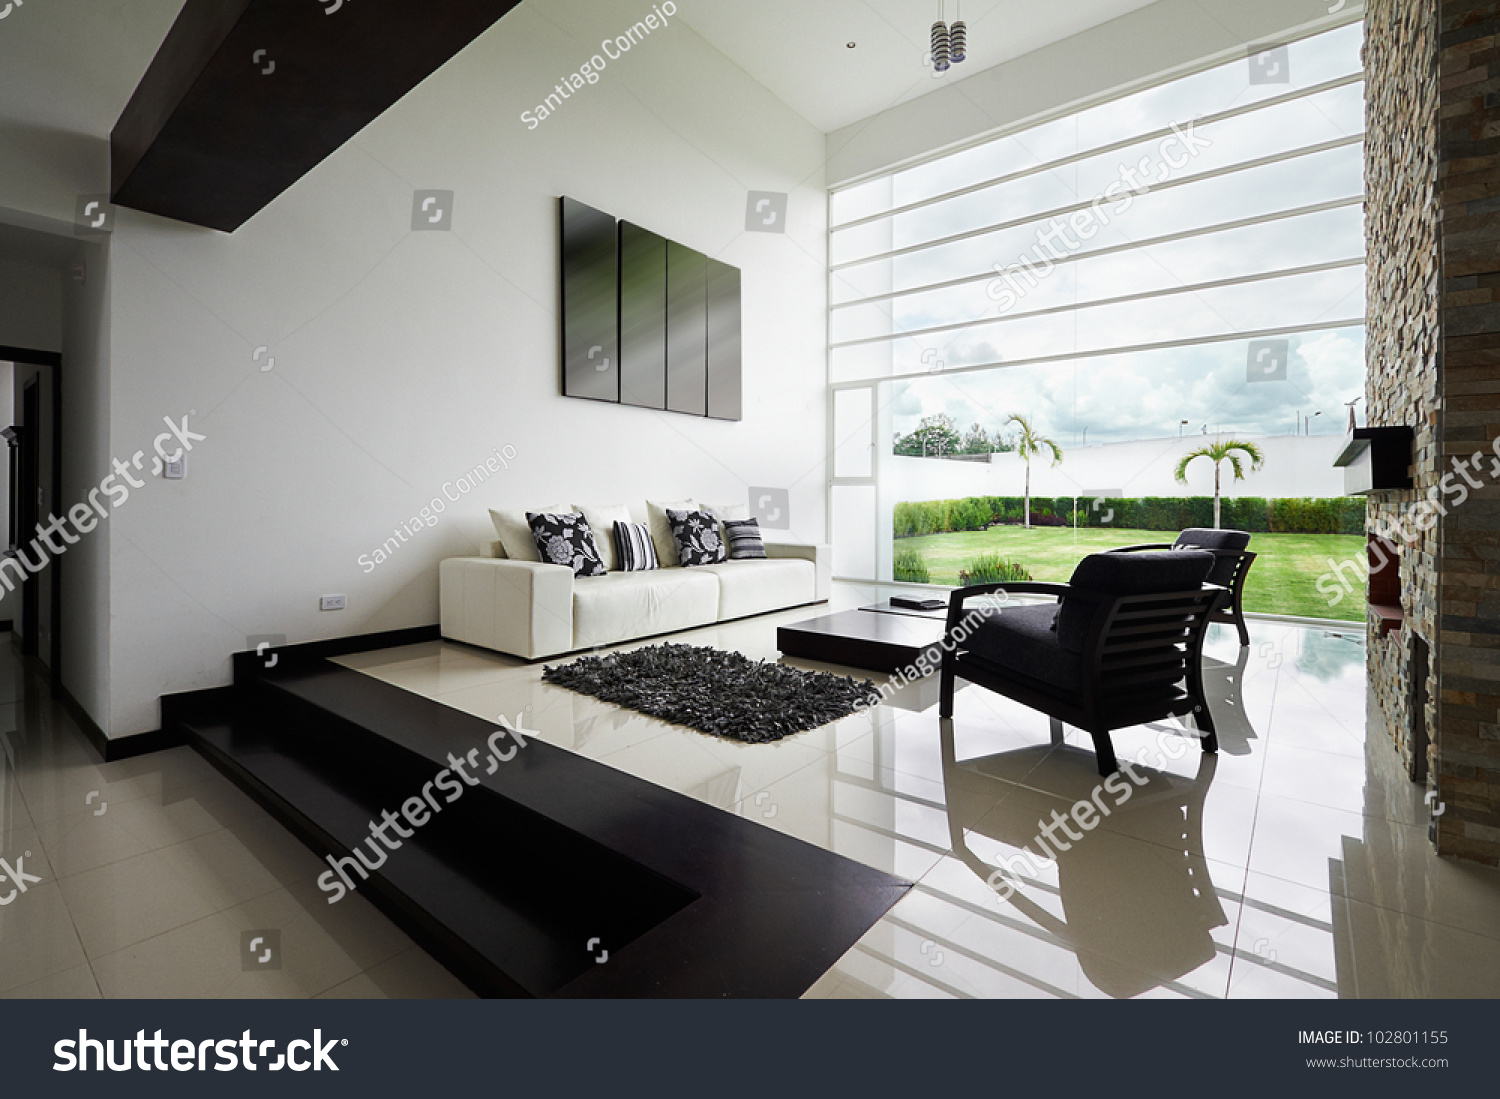 Interior Design Series Modern Living Room Stock Photo 102801155 ...